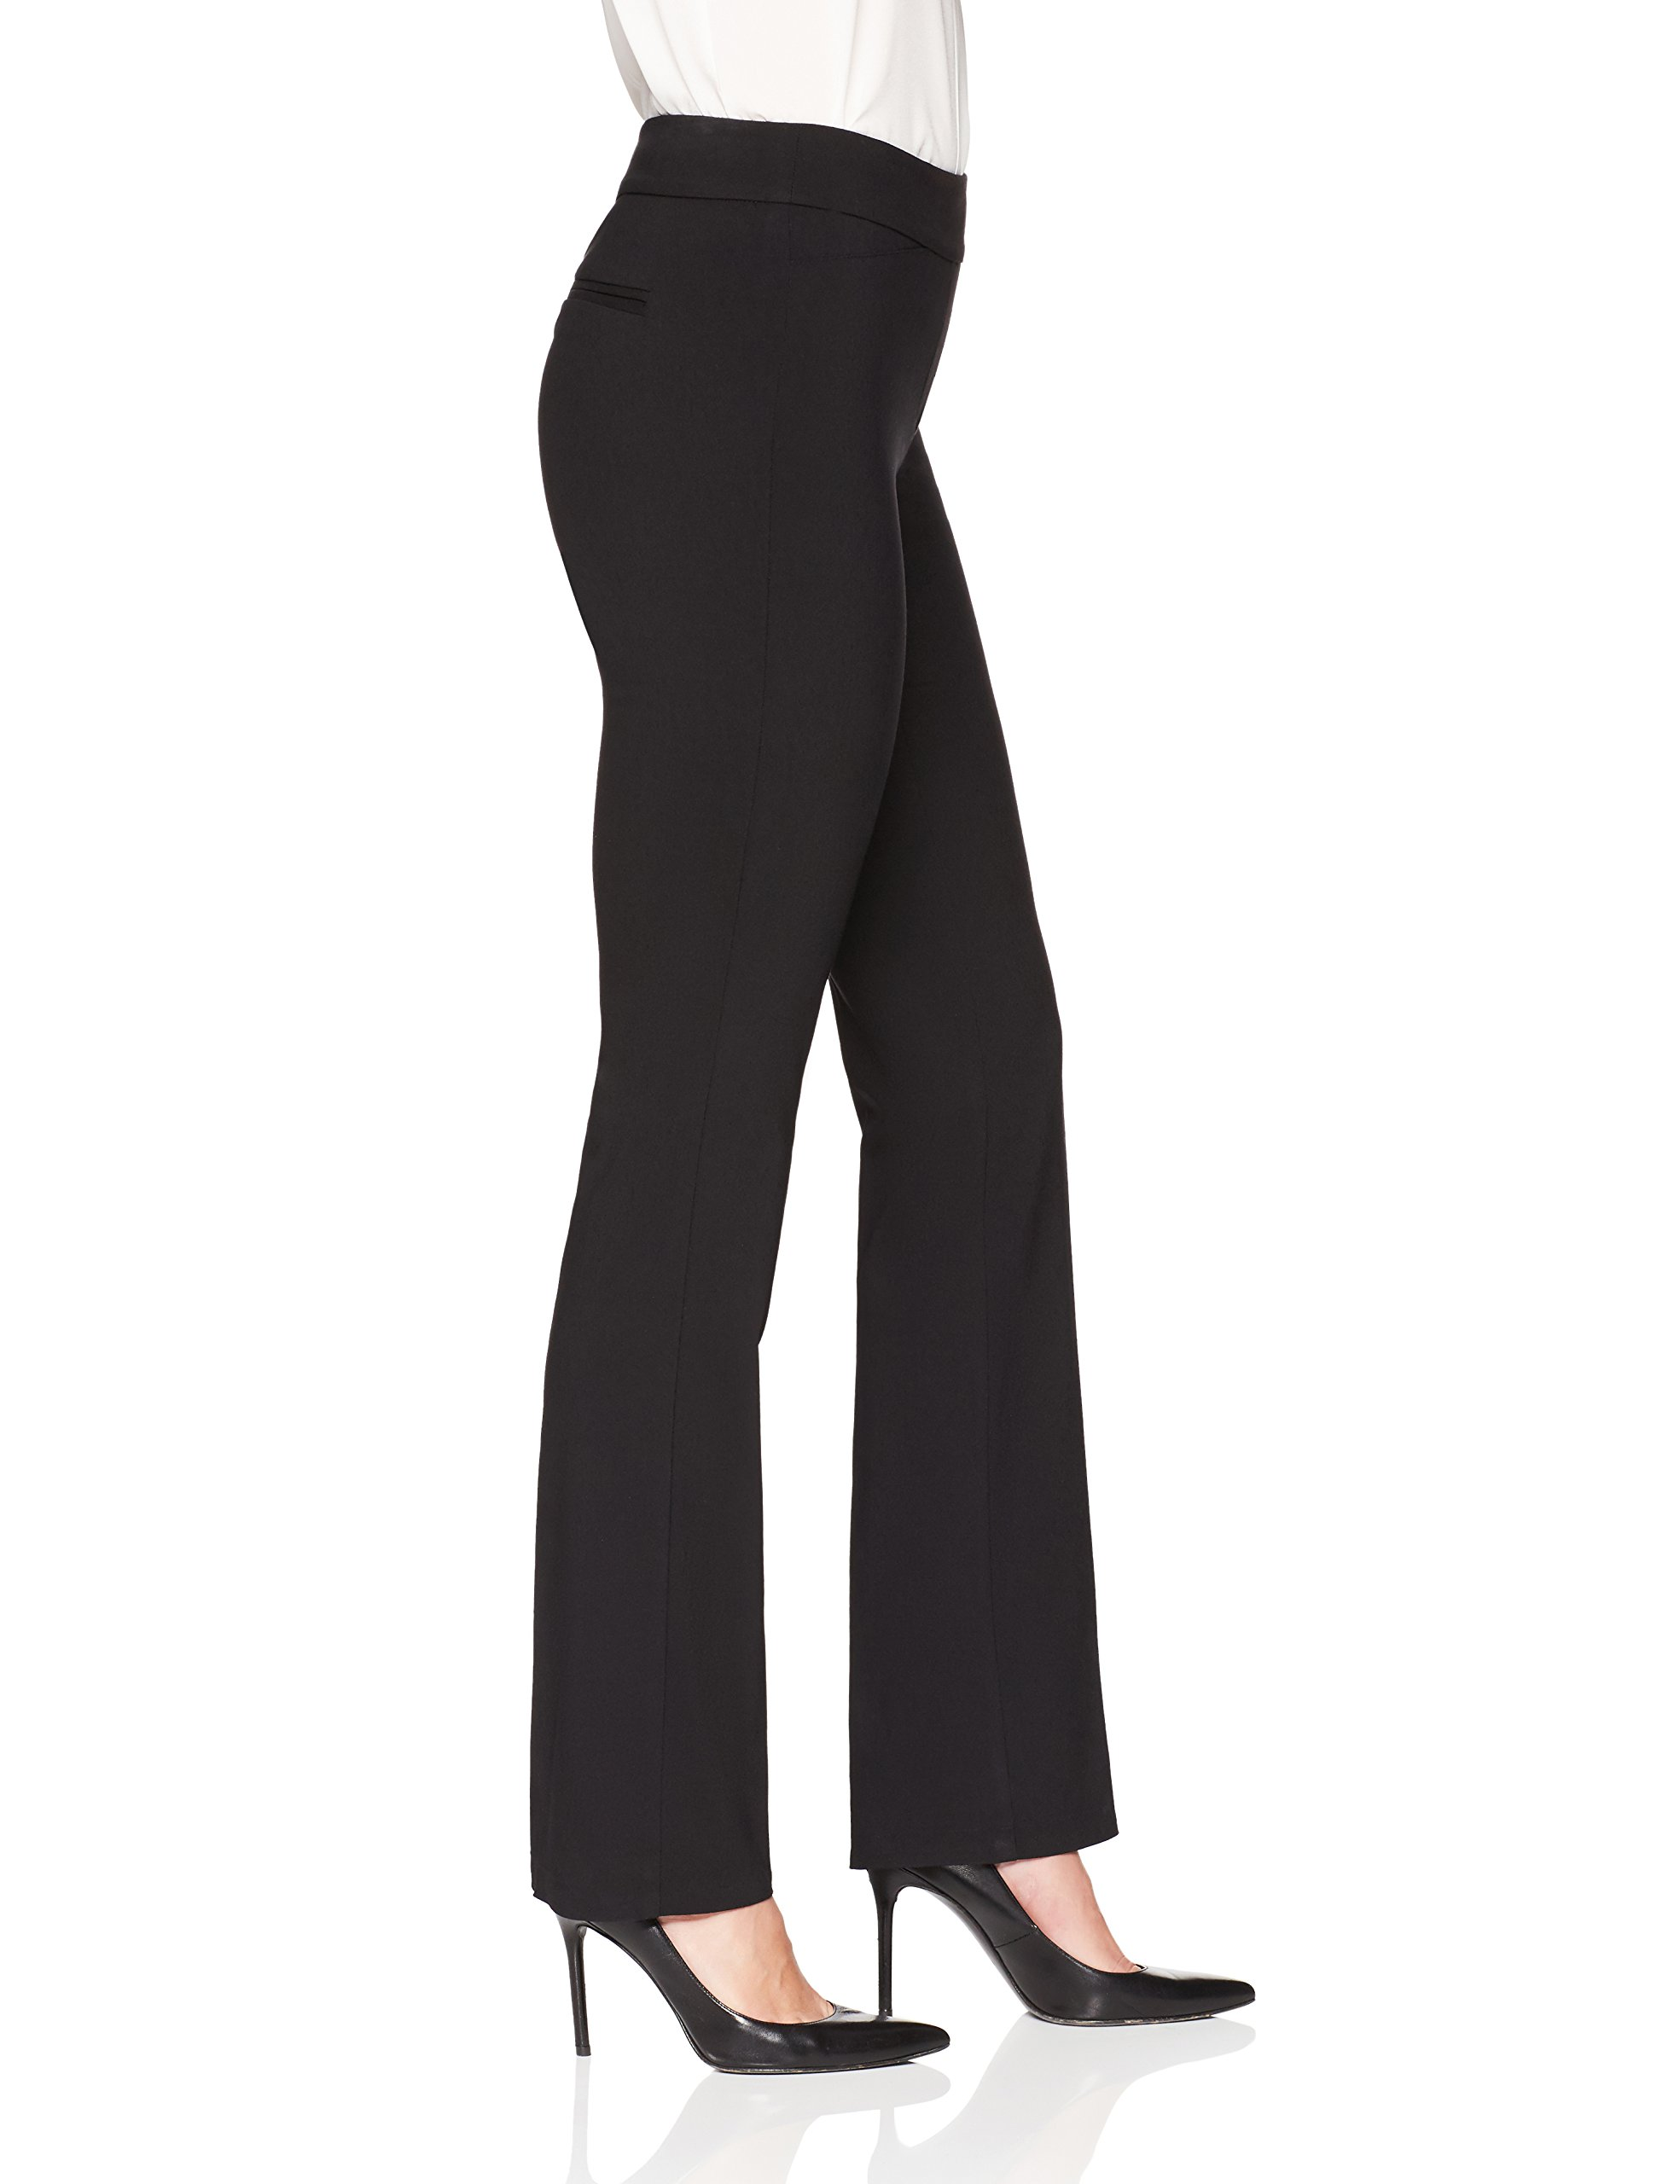 Lark & Ro Women's Barely Bootcut Stretch Pant: Comfort Fit, Black, 16 by Lark & Ro (Image #4)